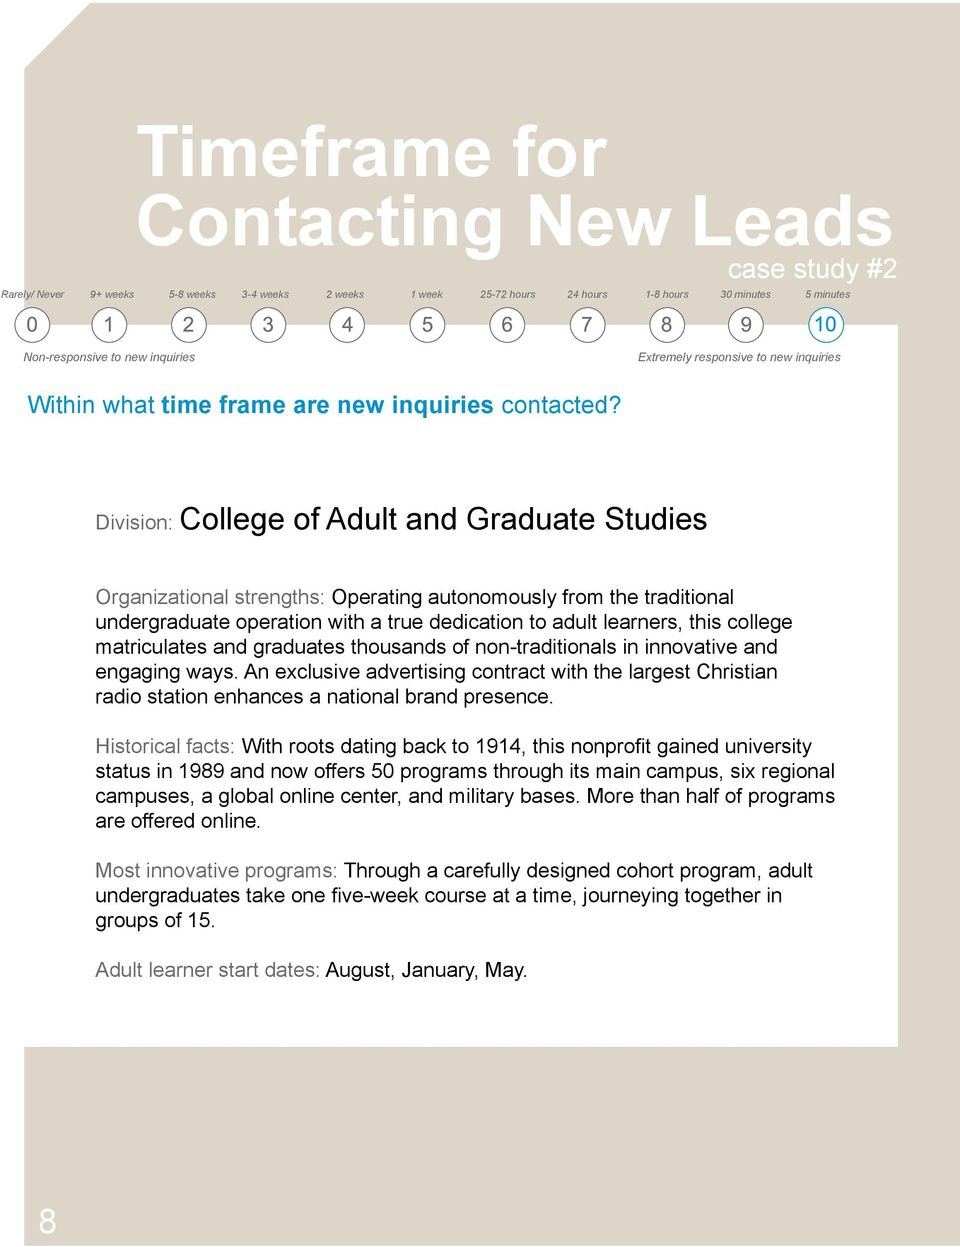 Division: College of Adult and Graduate Studies Organizational strengths: Operating autonomously from the traditional undergraduate operation with a true dedication to adult learners, this college